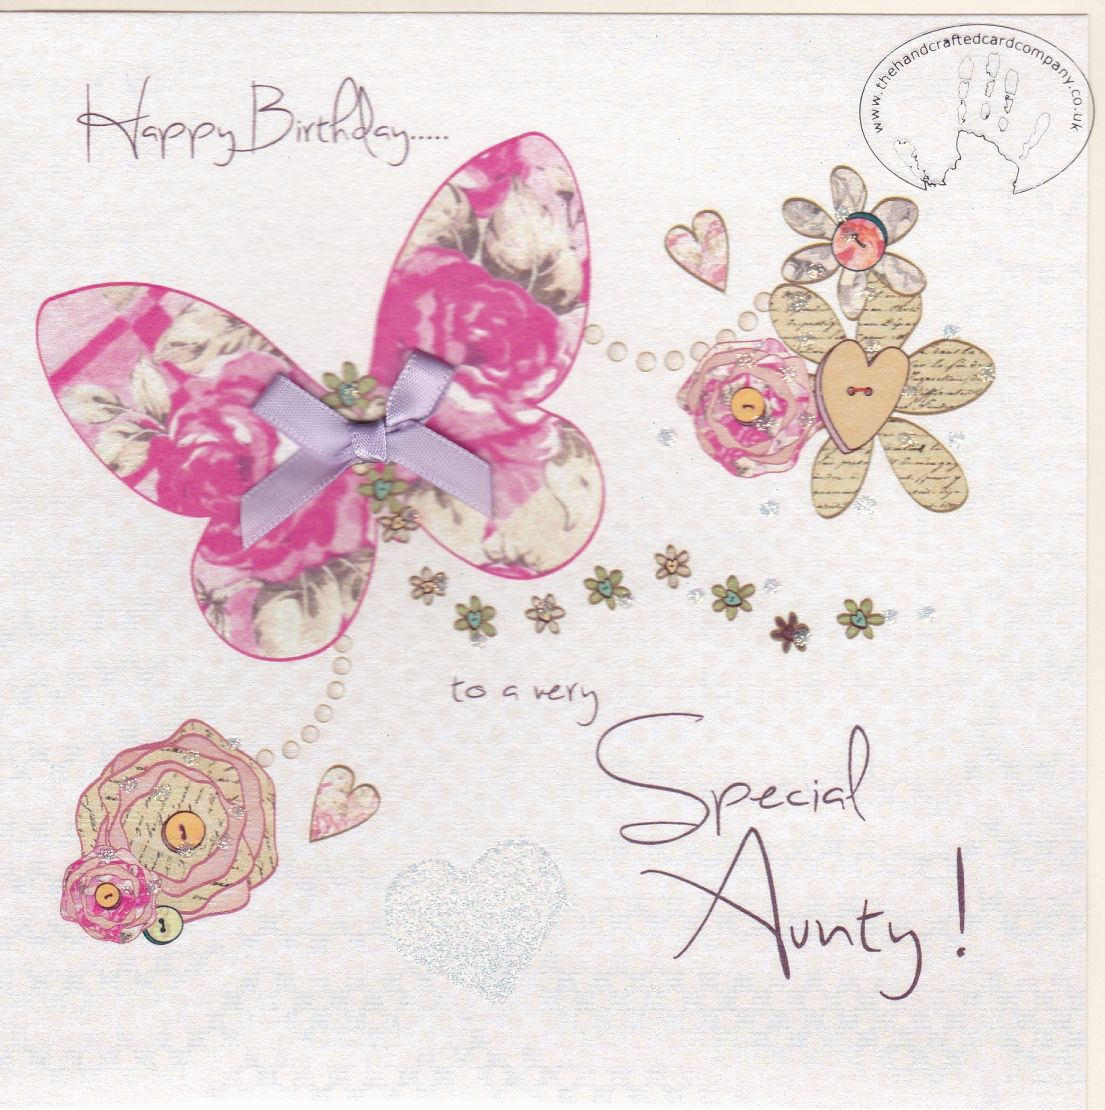 Flower Delivery England Special Aunty Birthday Card Erfly Heart Flowers For Aunt